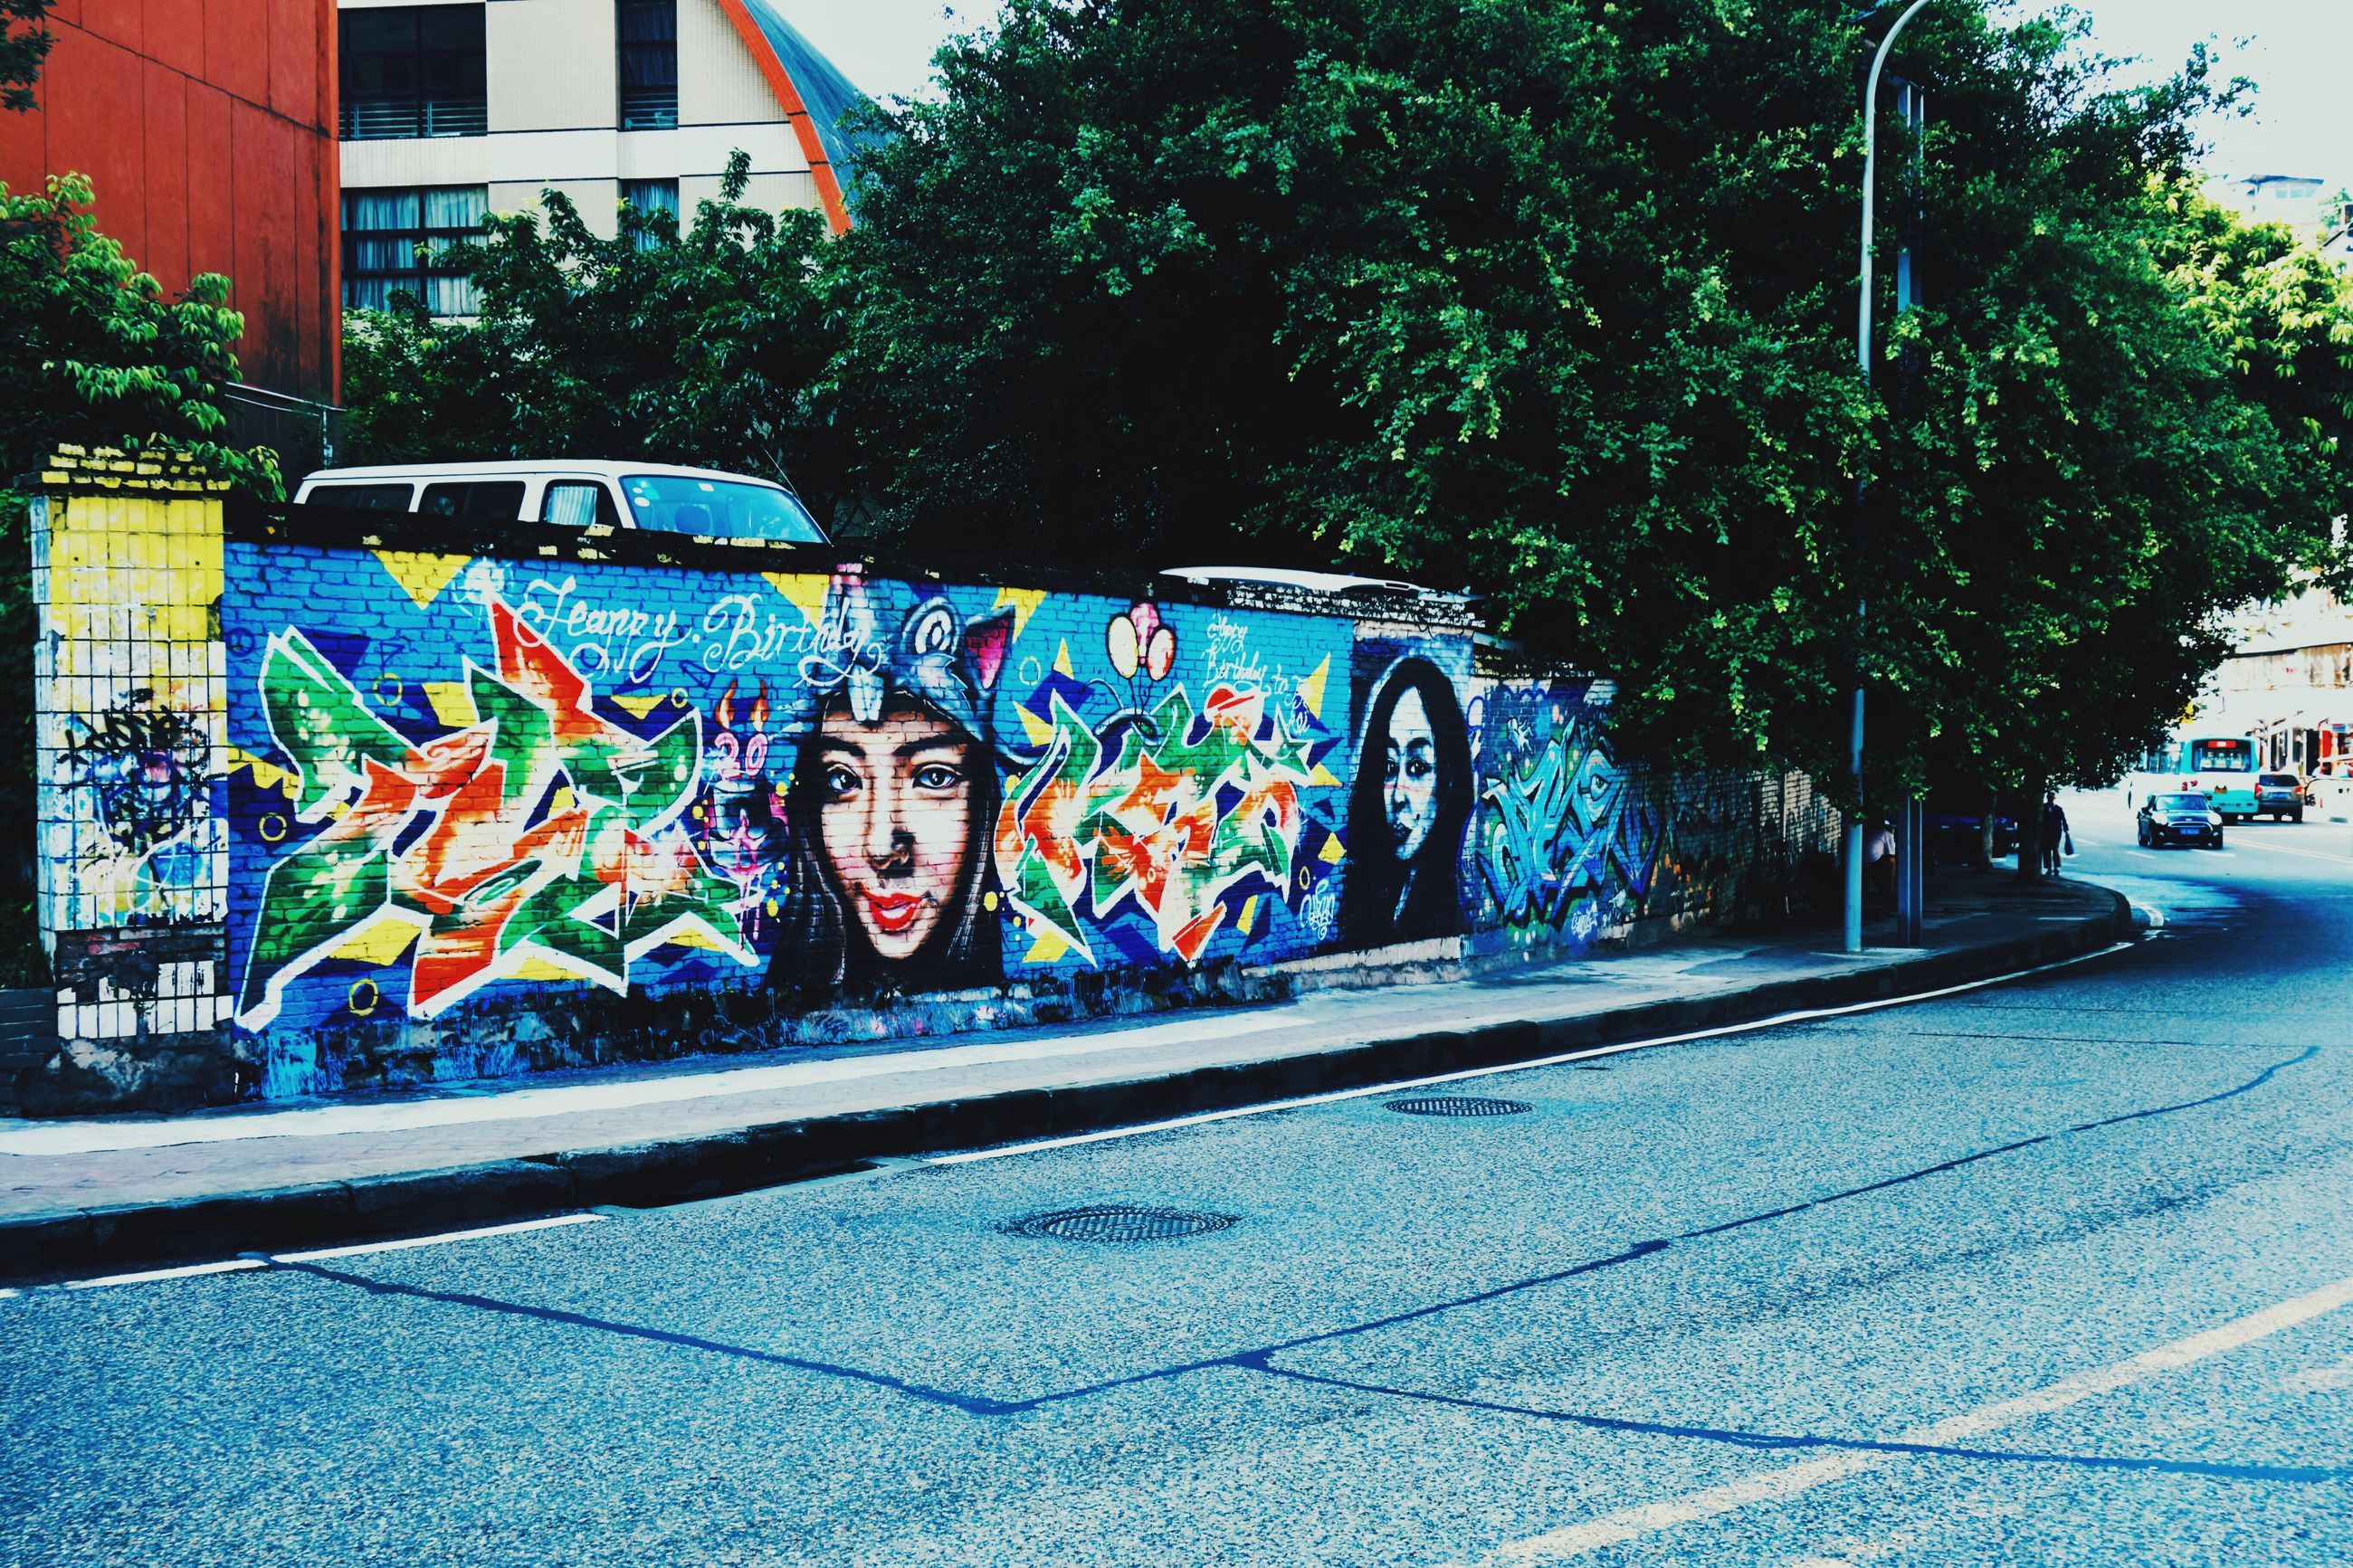 graffiti, art, architecture, built structure, art and craft, building exterior, creativity, street, multi colored, text, transportation, street art, city, wall - building feature, road, western script, sidewalk, tree, outdoors, day